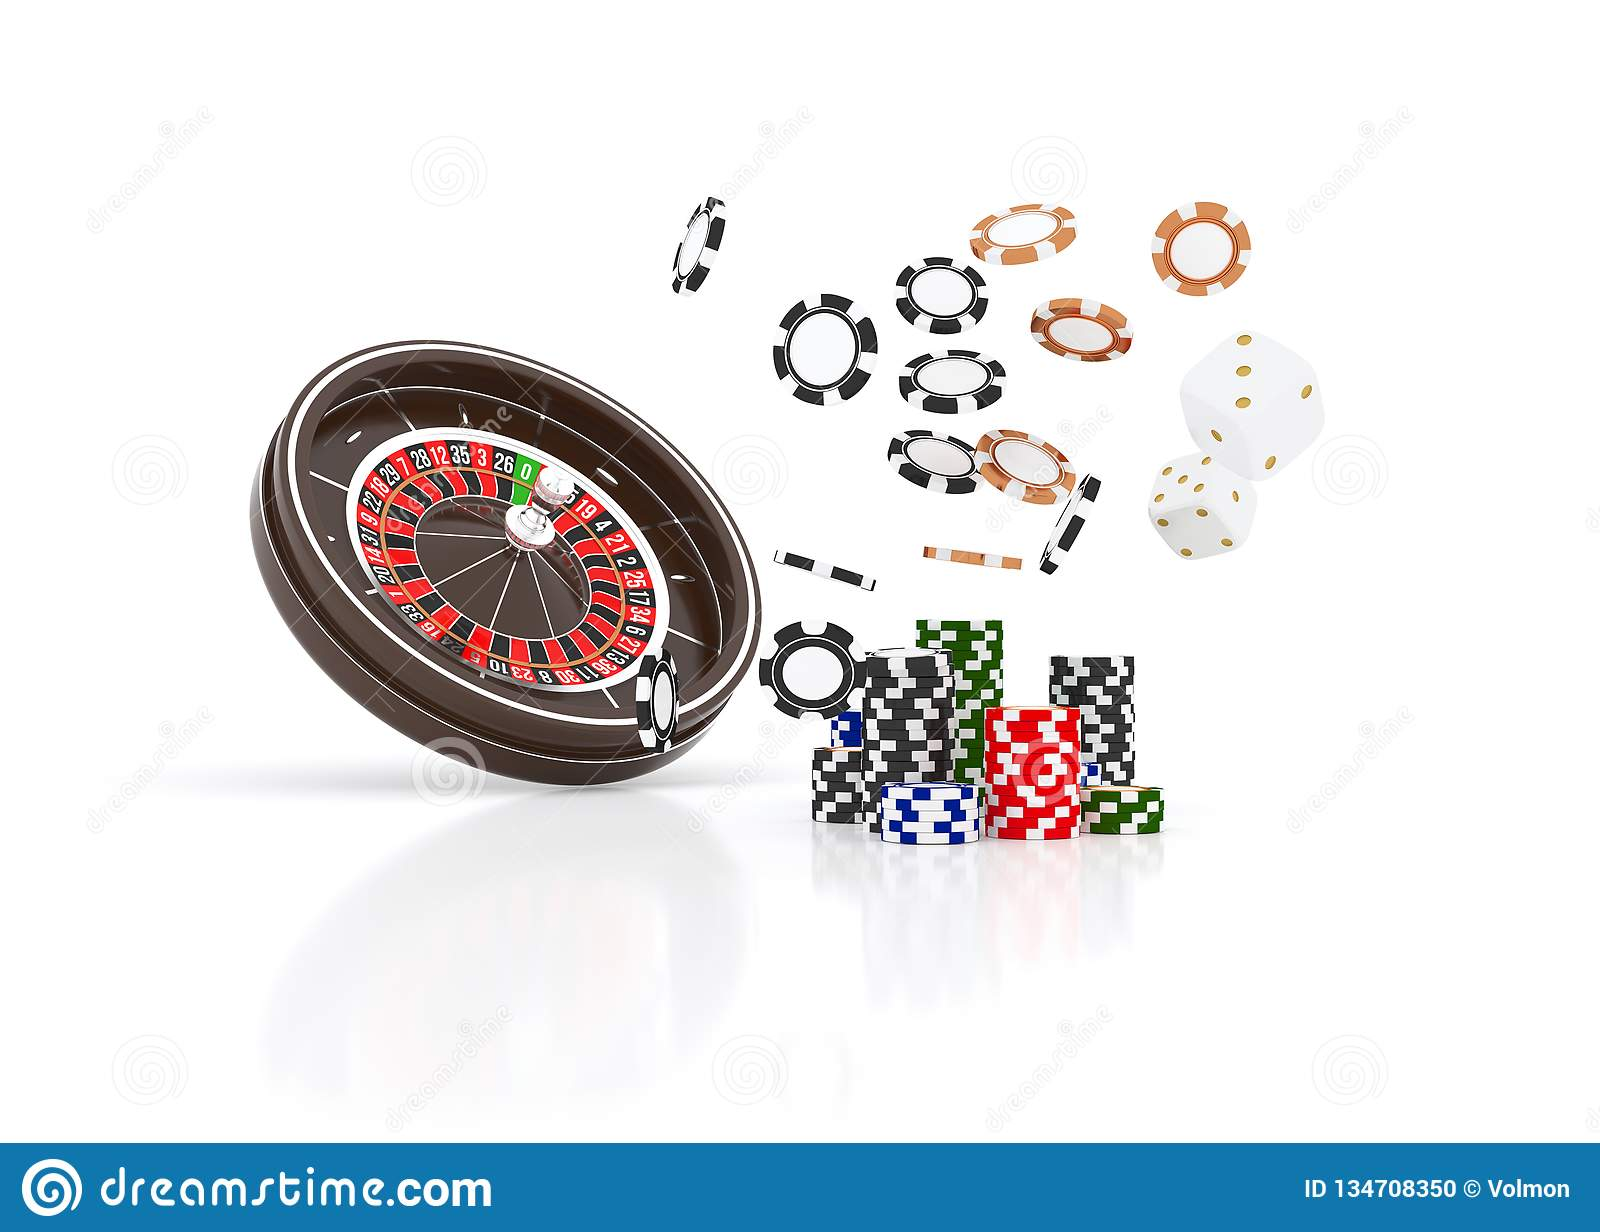 Casino Roulette Wheel Chips Isolated On White Casino Game 3d Chips Online Casino Banner Black Realistic Chip Stock Illustration Illustration Of Background Number 134708350